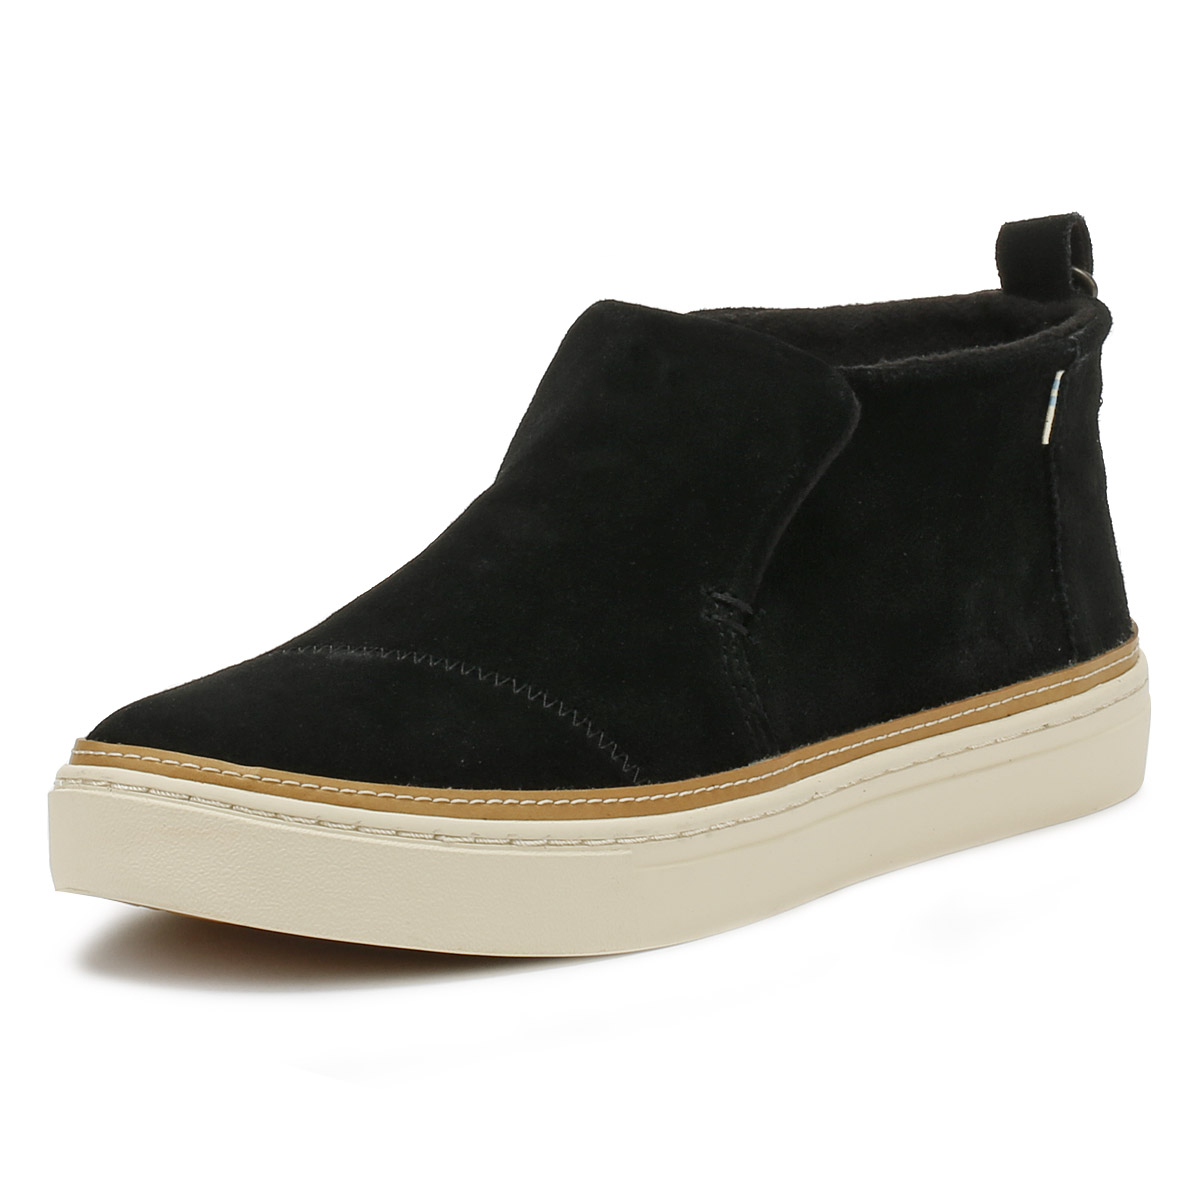 3f0fa6e0e3c Details about TOMS Womens Black Suede Paxton Shoes Ladies Slip On Casual Ankle  Boots